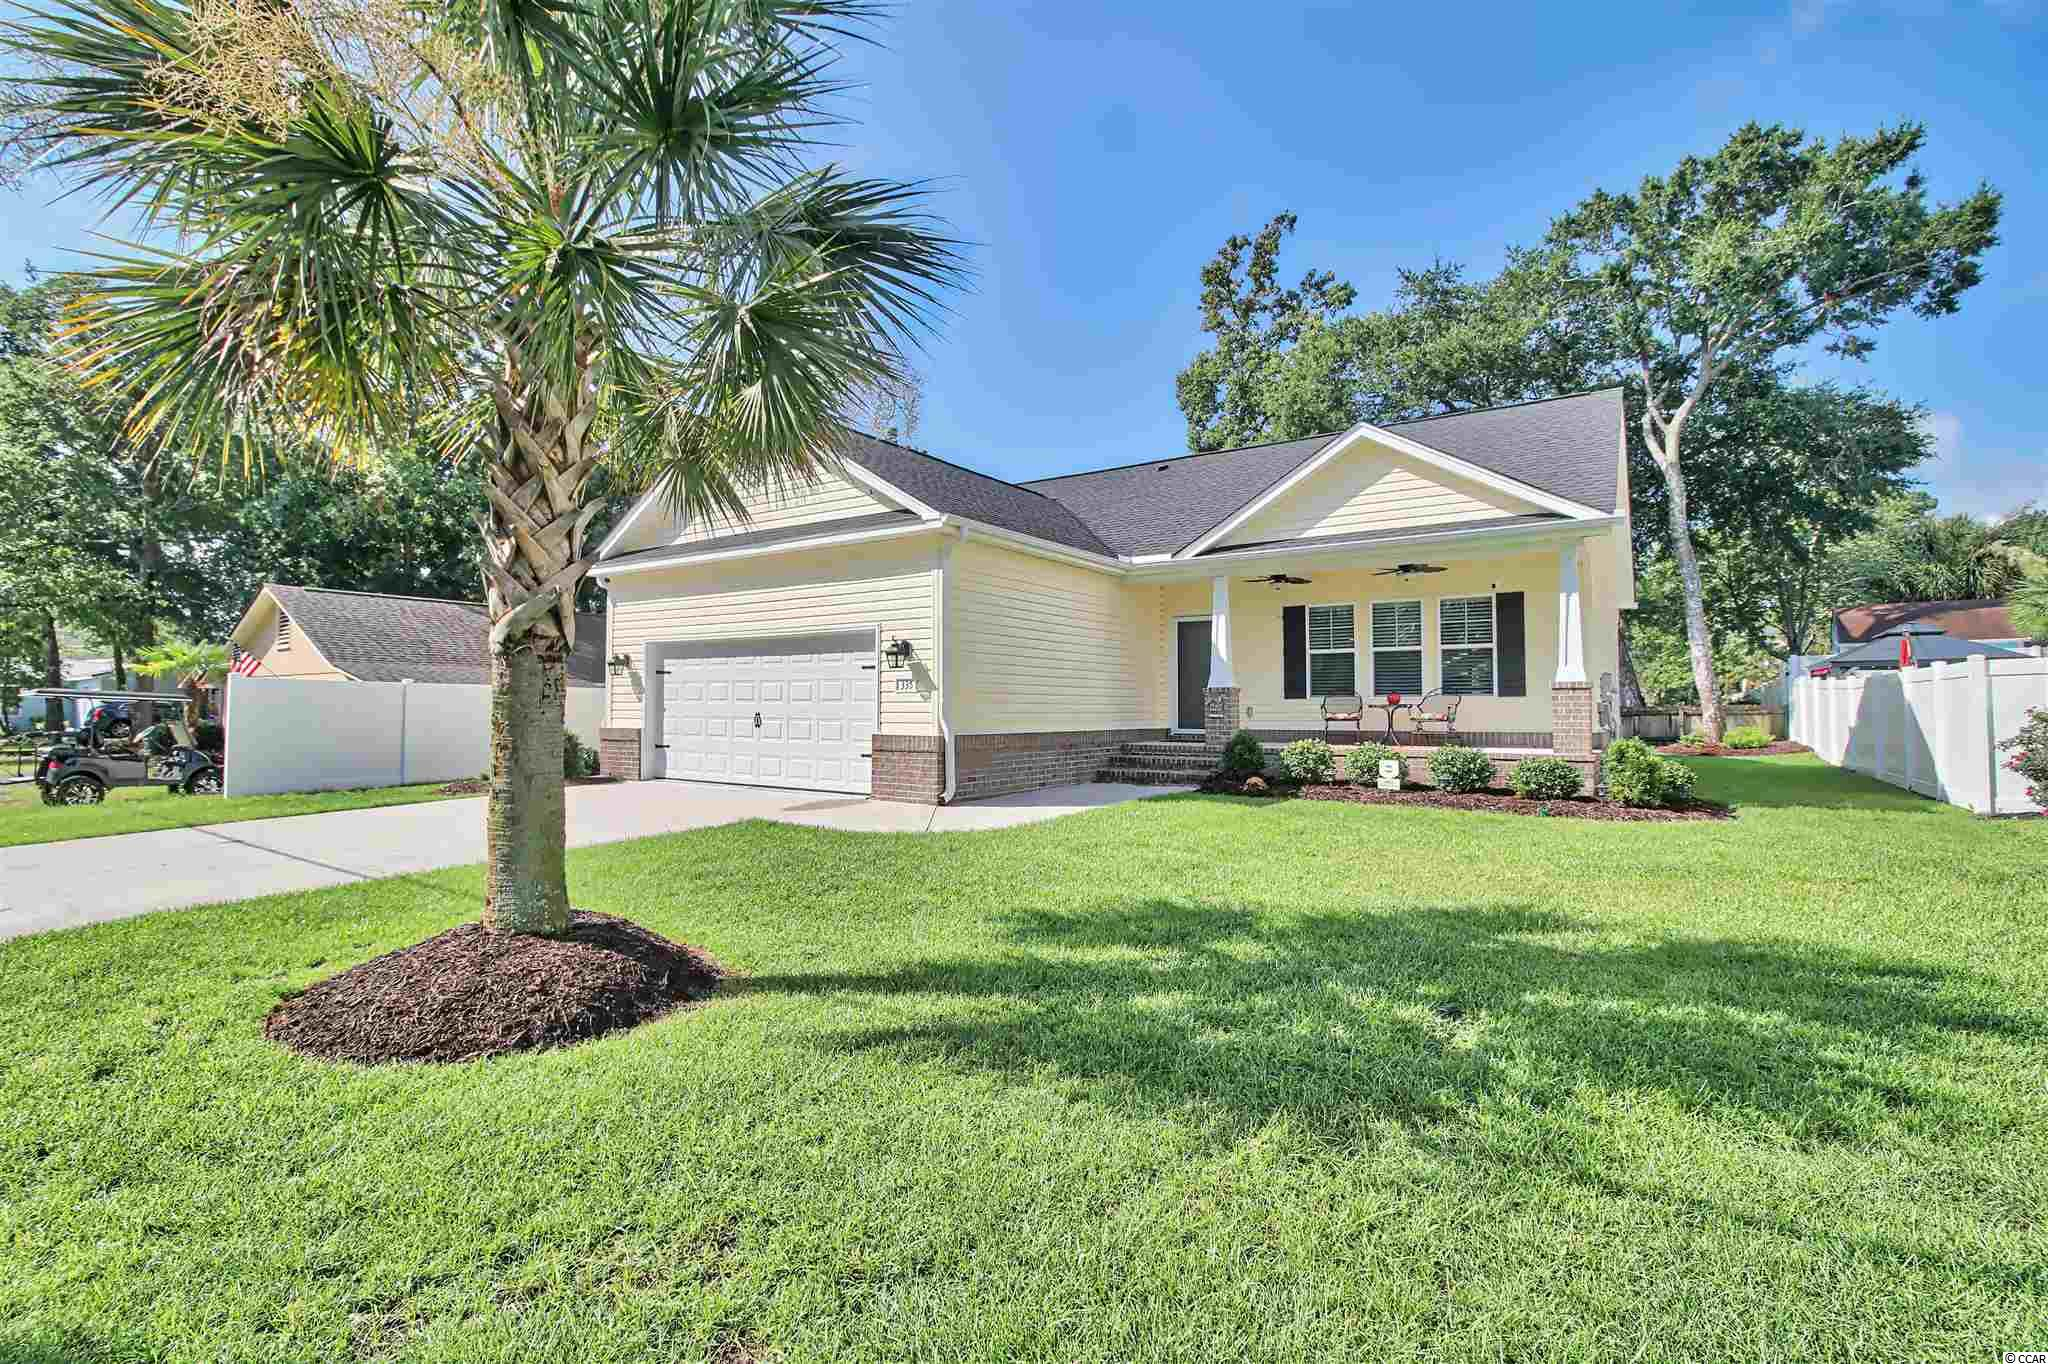 What a find!!! Almost new home built in 2016 and only used occasionally as a 2nd home located only 2 1/2 blocks to Surfside Beach!!! Open the front door to a welcoming open-floor concept living room, dining room, and kitchen with cathedral ceilings and engineered hardwood floors. 3 Bedrooms, 2 Baths with 9 foot ceilings in them and in the hallway, with a tray ceiling in the Master Bedroom. Granite countertops in both the kitchen and the baths, tile blacksplash in the kitchen with Stainless Steel appliances. Ceramic tile floors in the baths and laundry area. Epoxy garage floor with cabinetry and a 12,000 BTU mini-split (with heat), rear screened porch and irrigation system on a separate water meter.